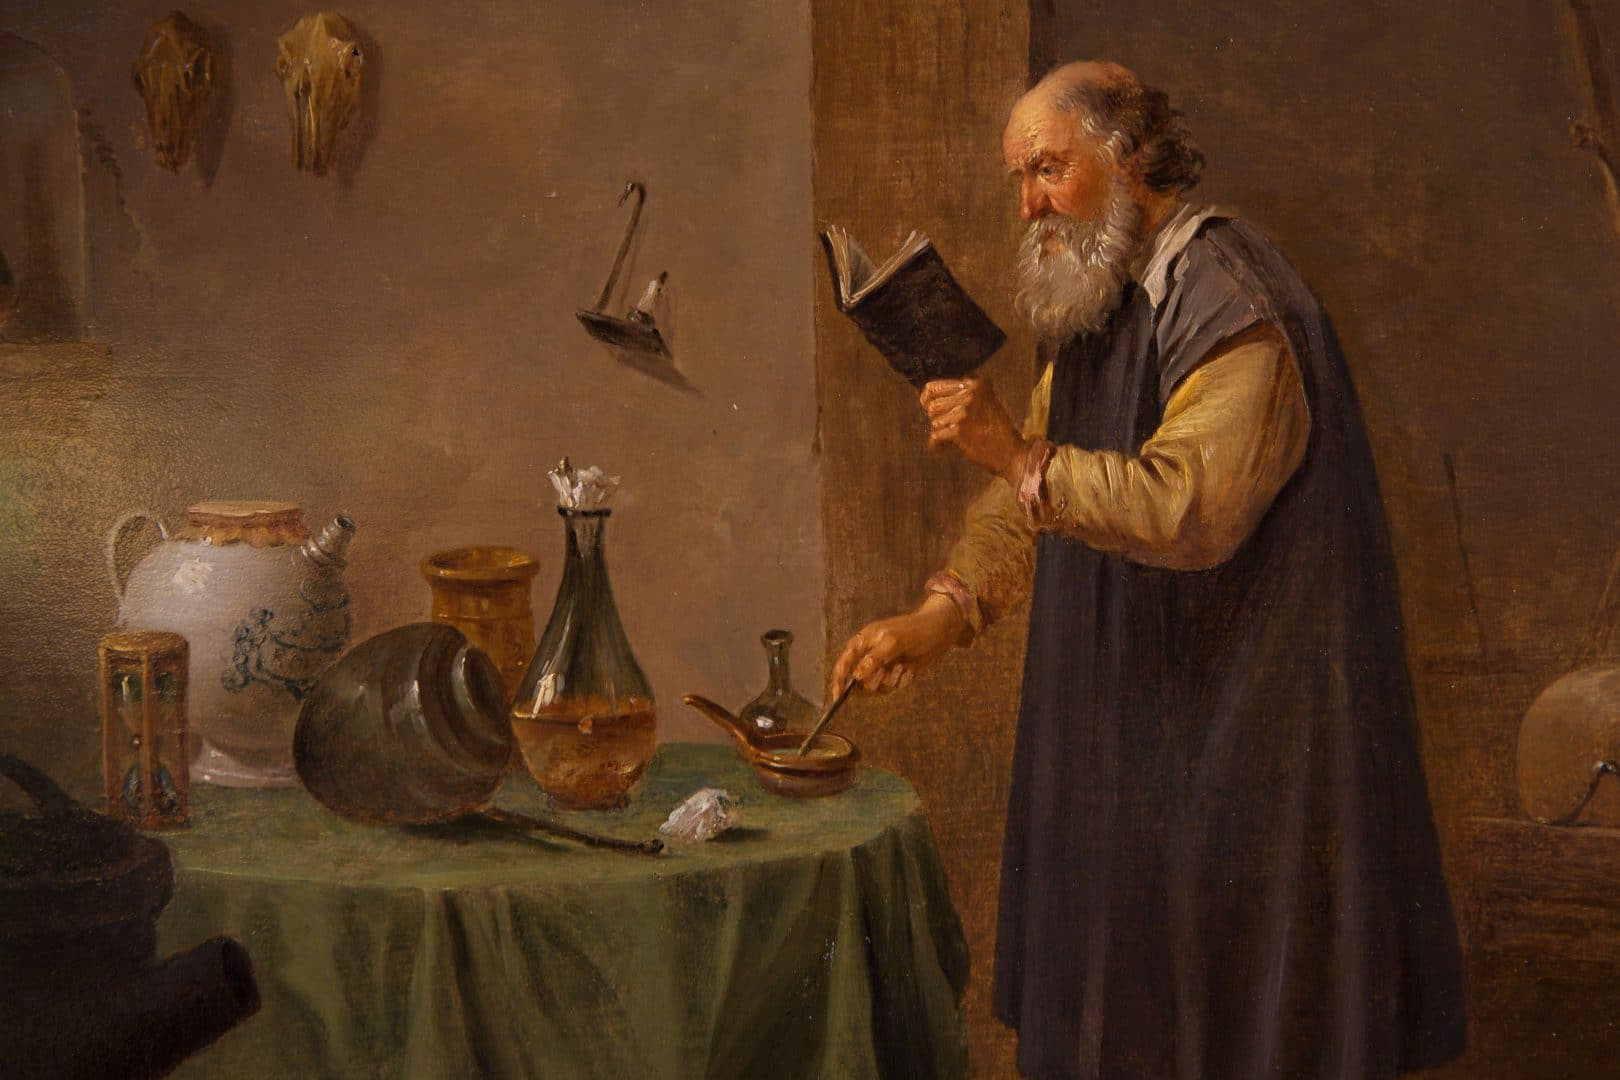 Style of David Teniers the Younger, An Alchemist at Work, c. 1660-70.